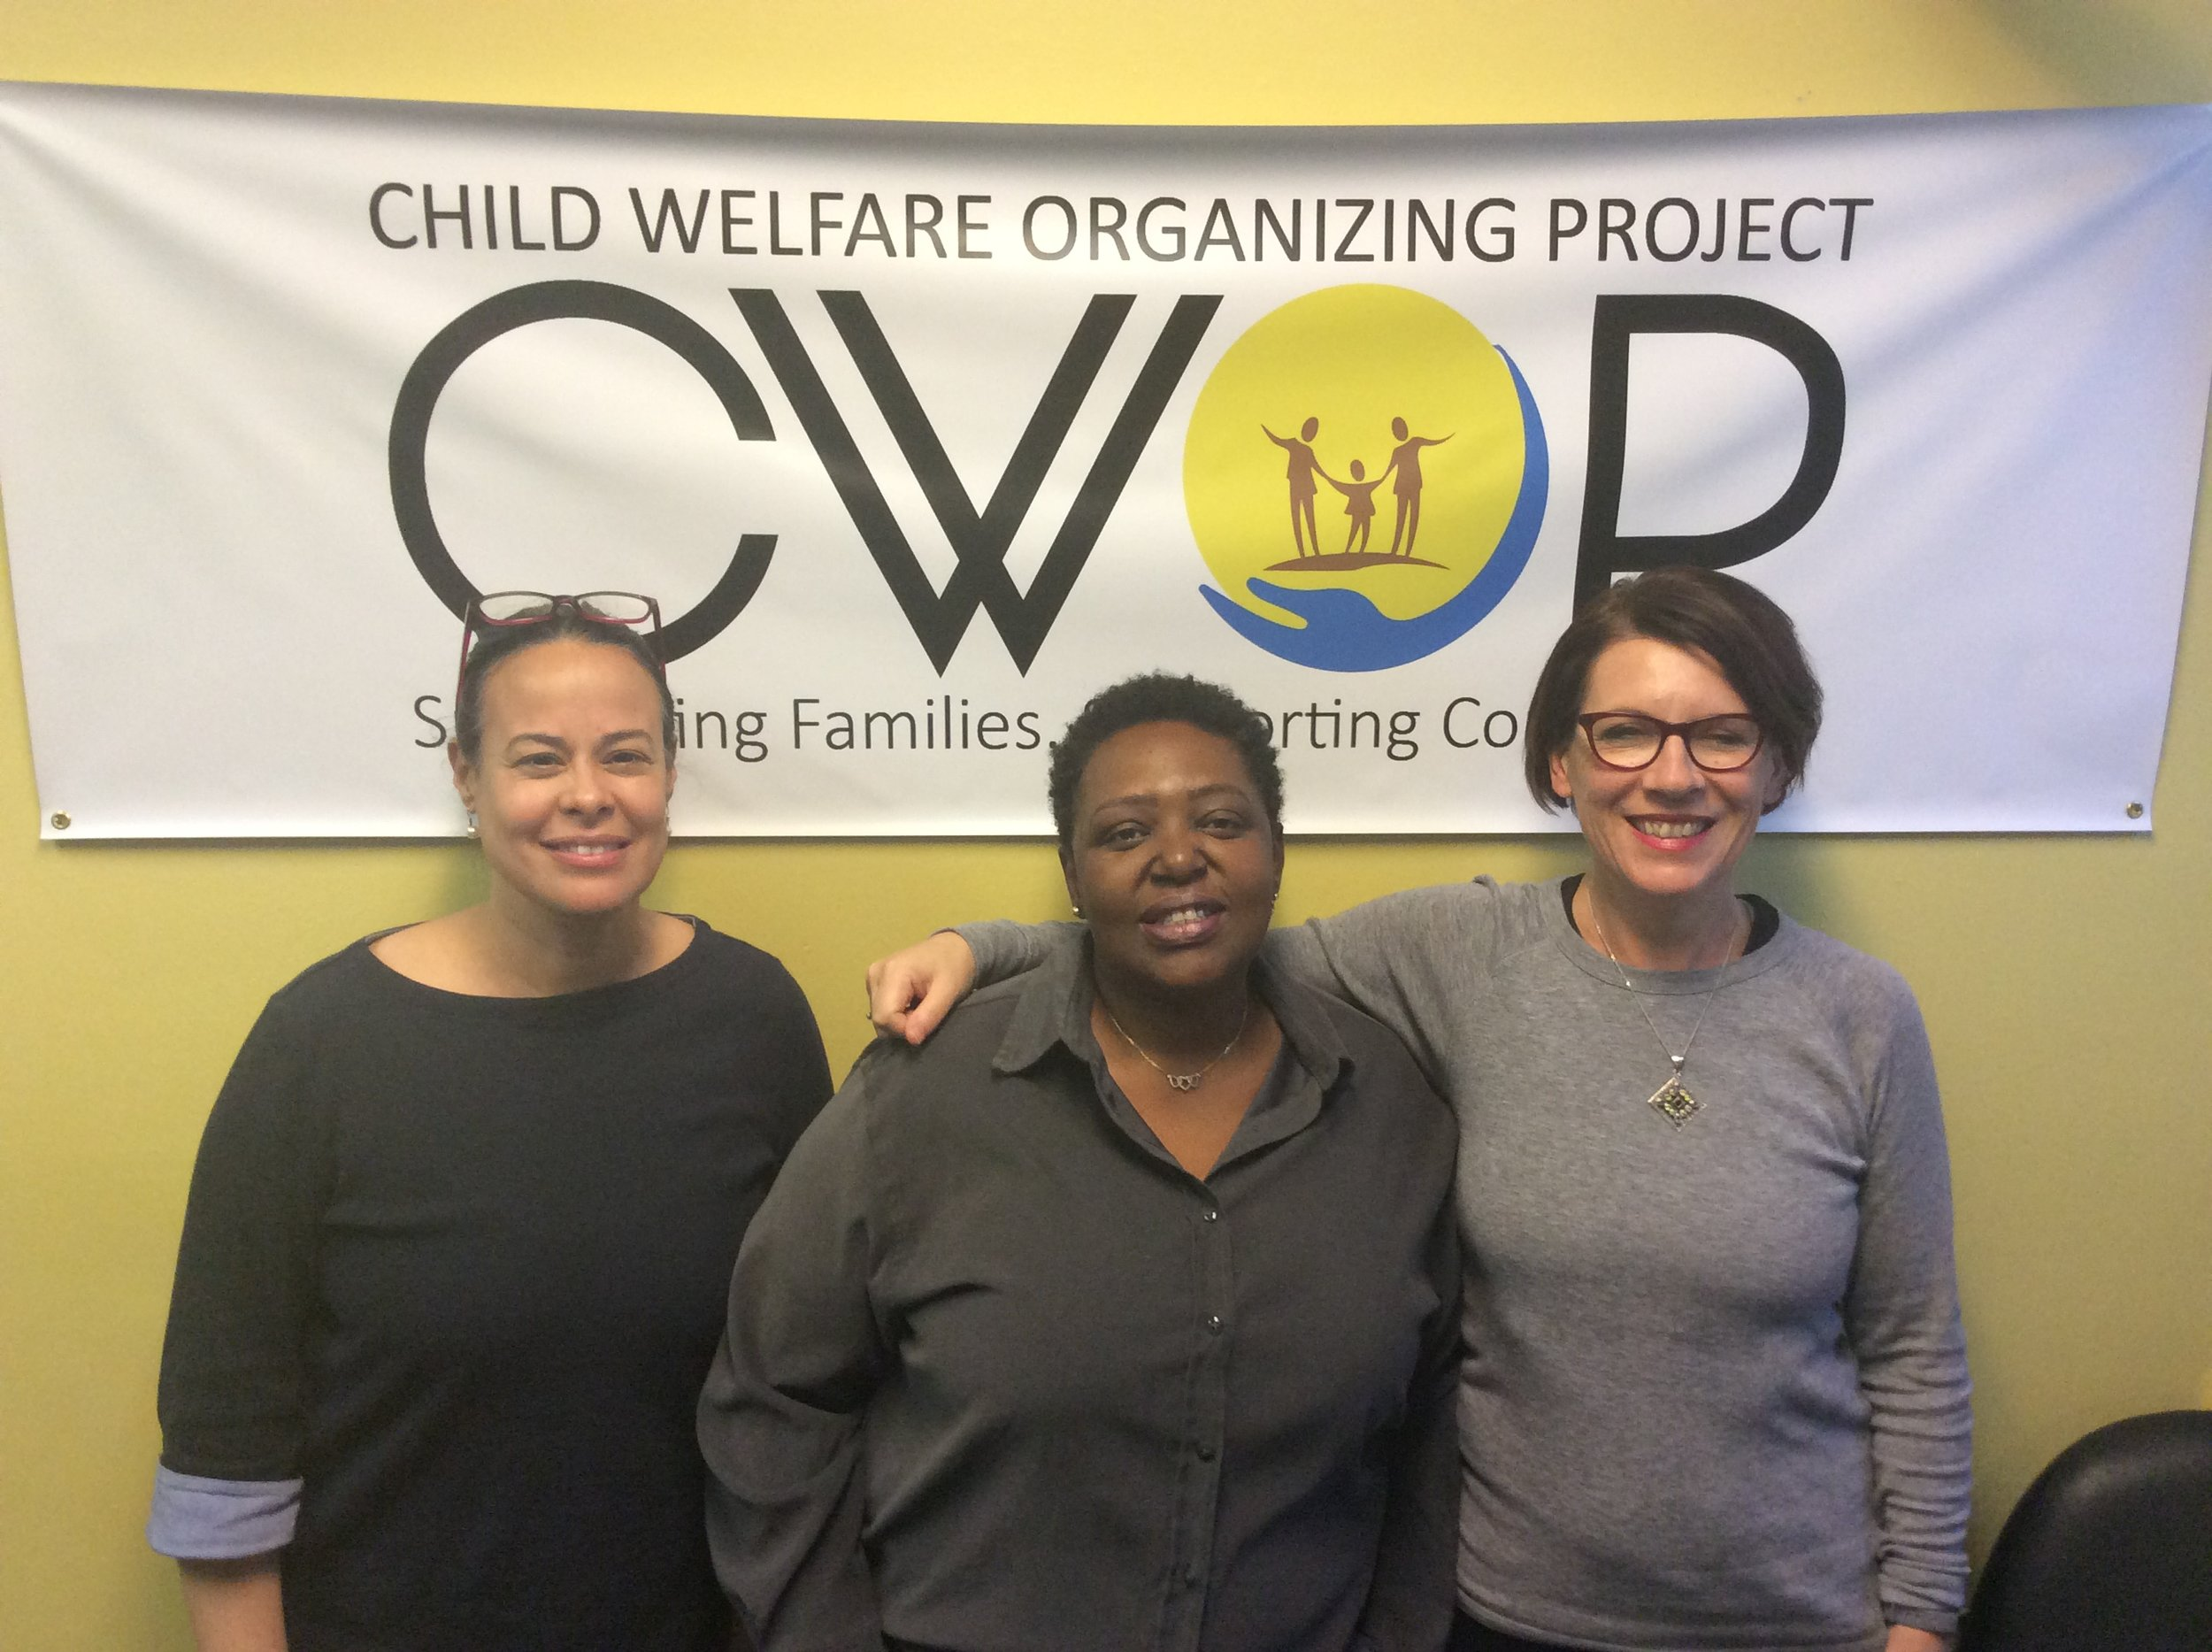 Eva Joyce and me at the Child Welfare Organizing Project (CWOP) in East Harlem. CWOP is a parent led organisation. It has been around for more than 20 years and has been instrumental in bringing about change over time.